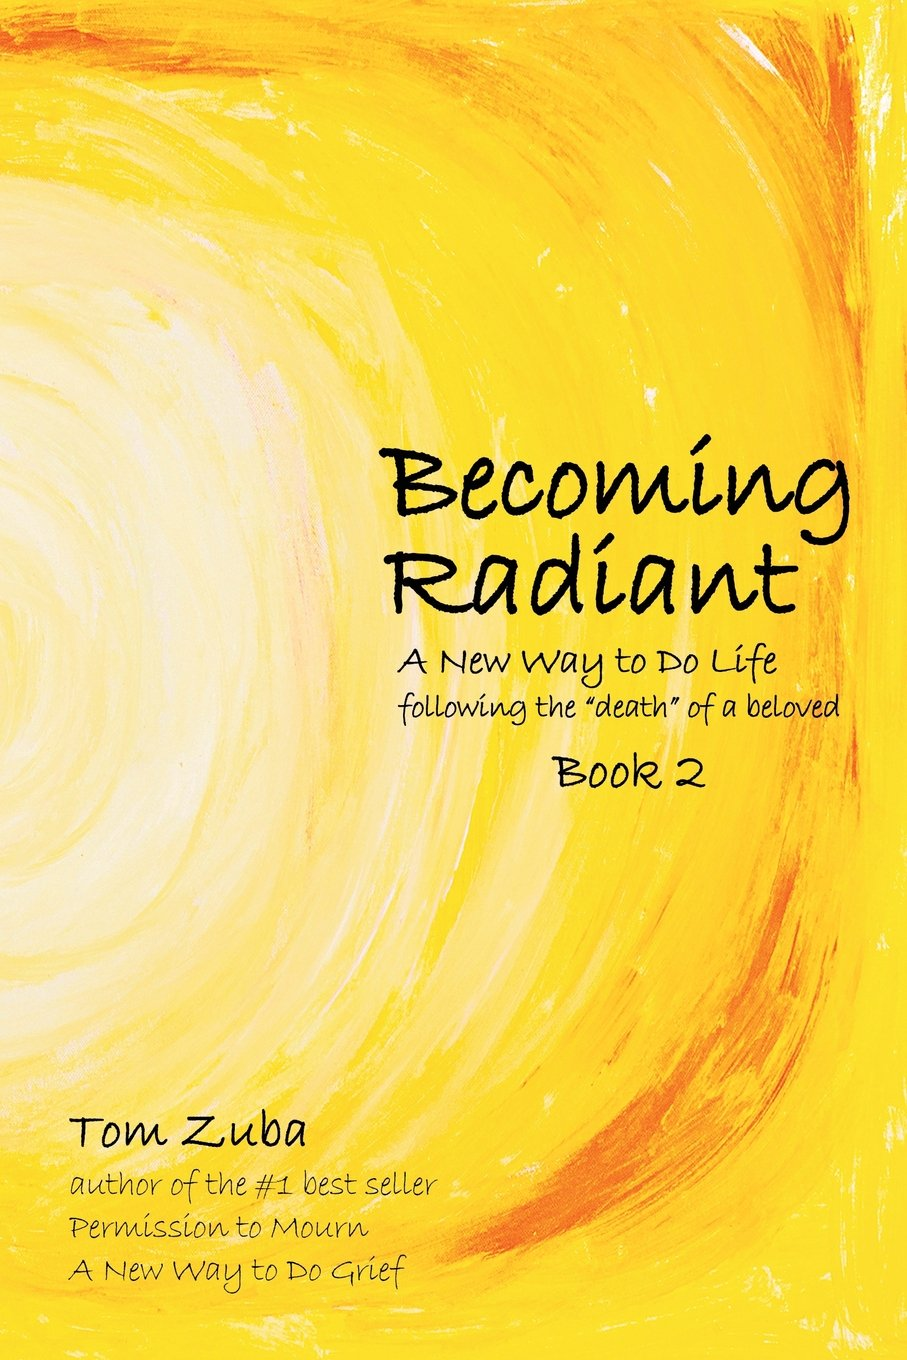 Becoming Radiant Following Death Beloved